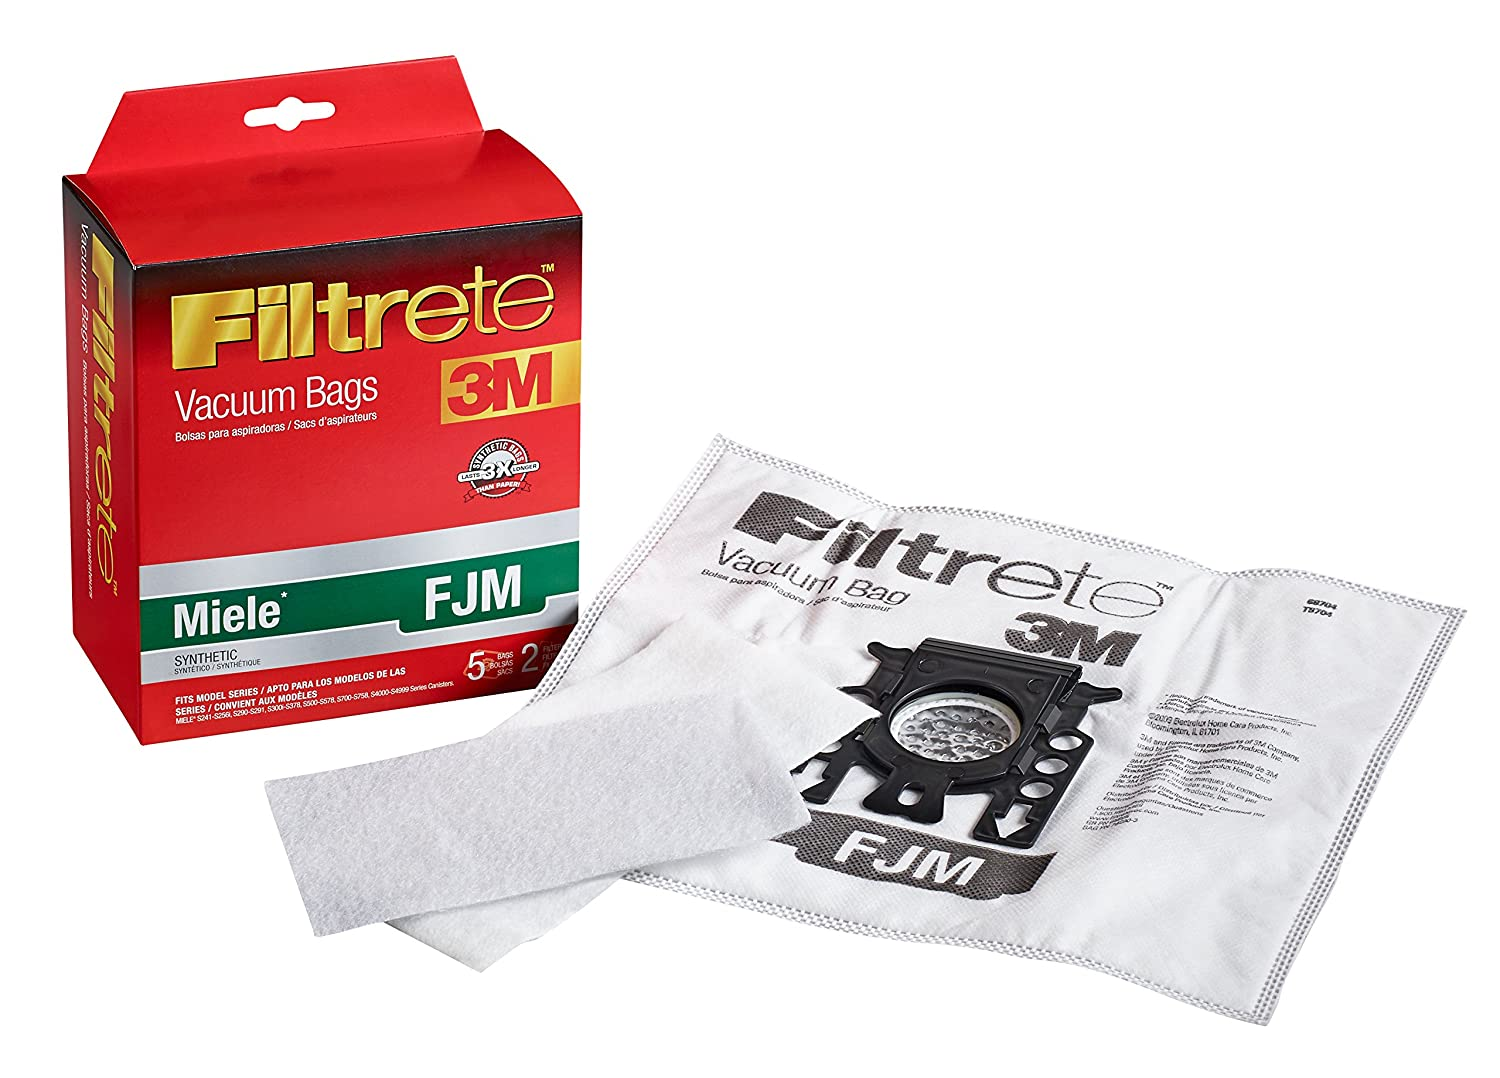 Filtrete Miele FJM Synthetic Vacuum Bag